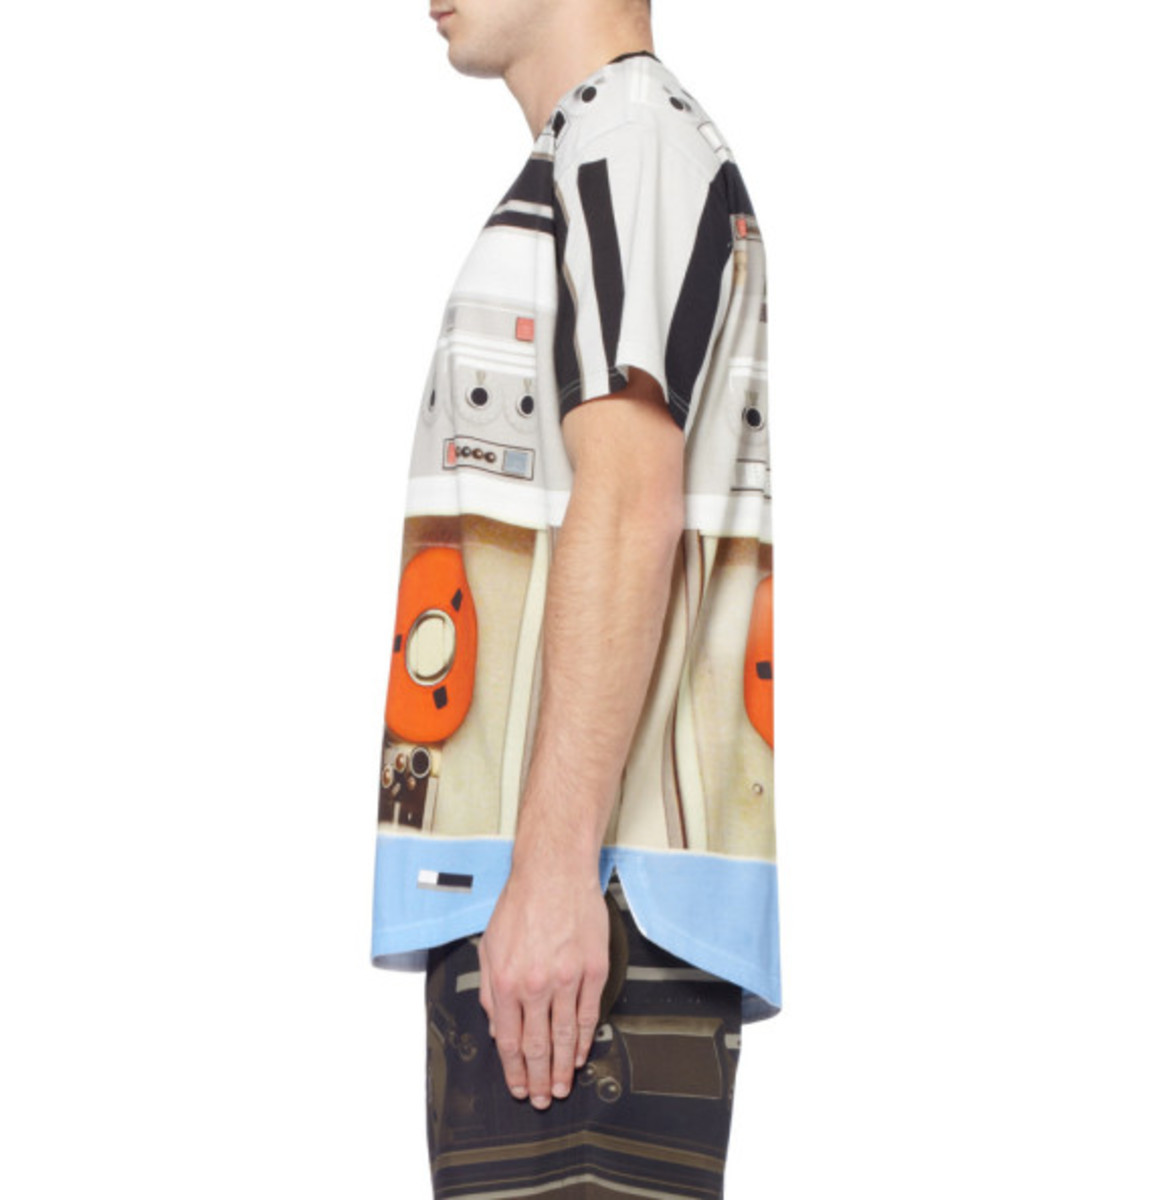 givenchy-tape-deck-print-t-shirt-04